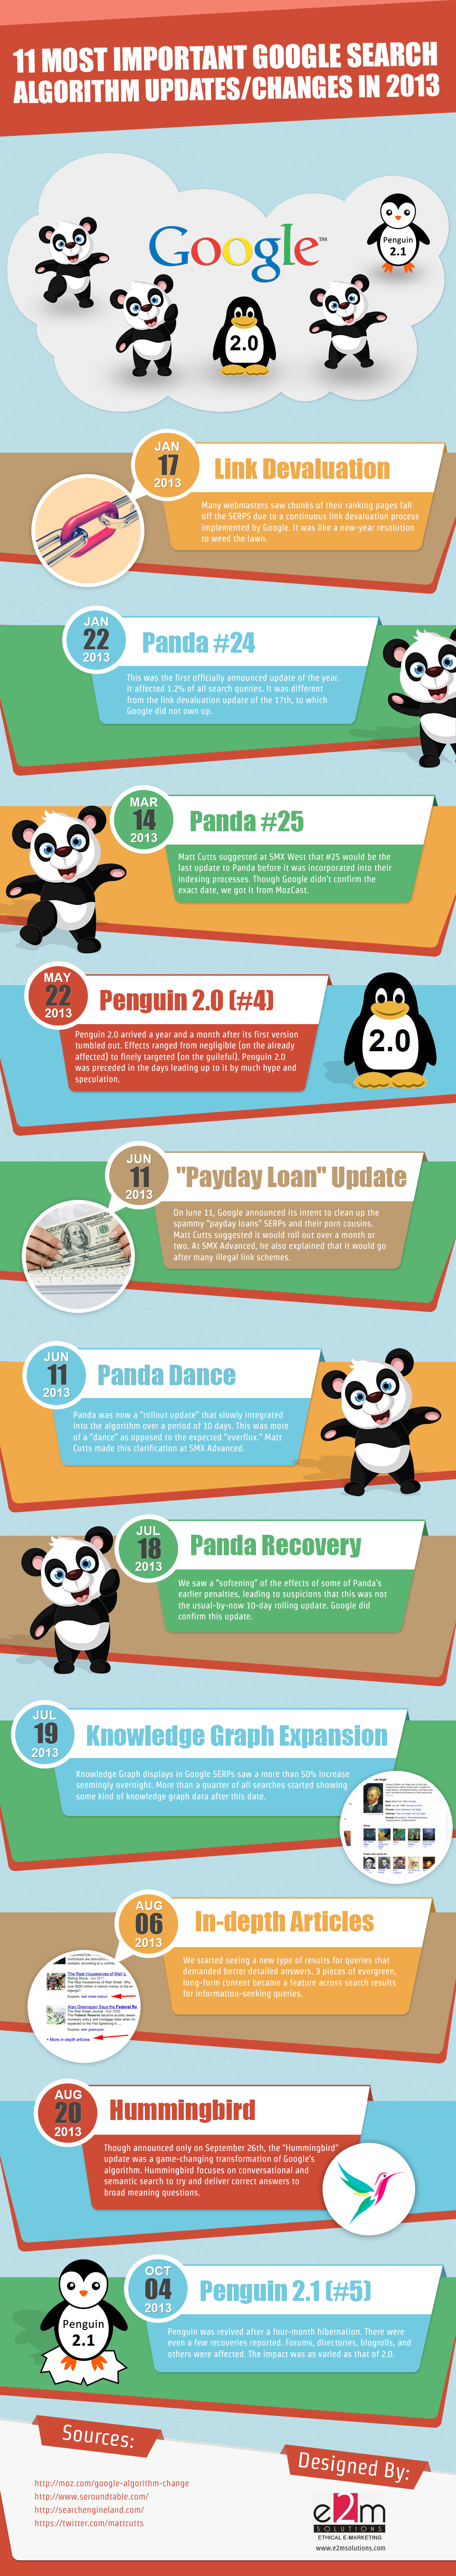 11 Most Important Google Search Algorithm Changes In 2013